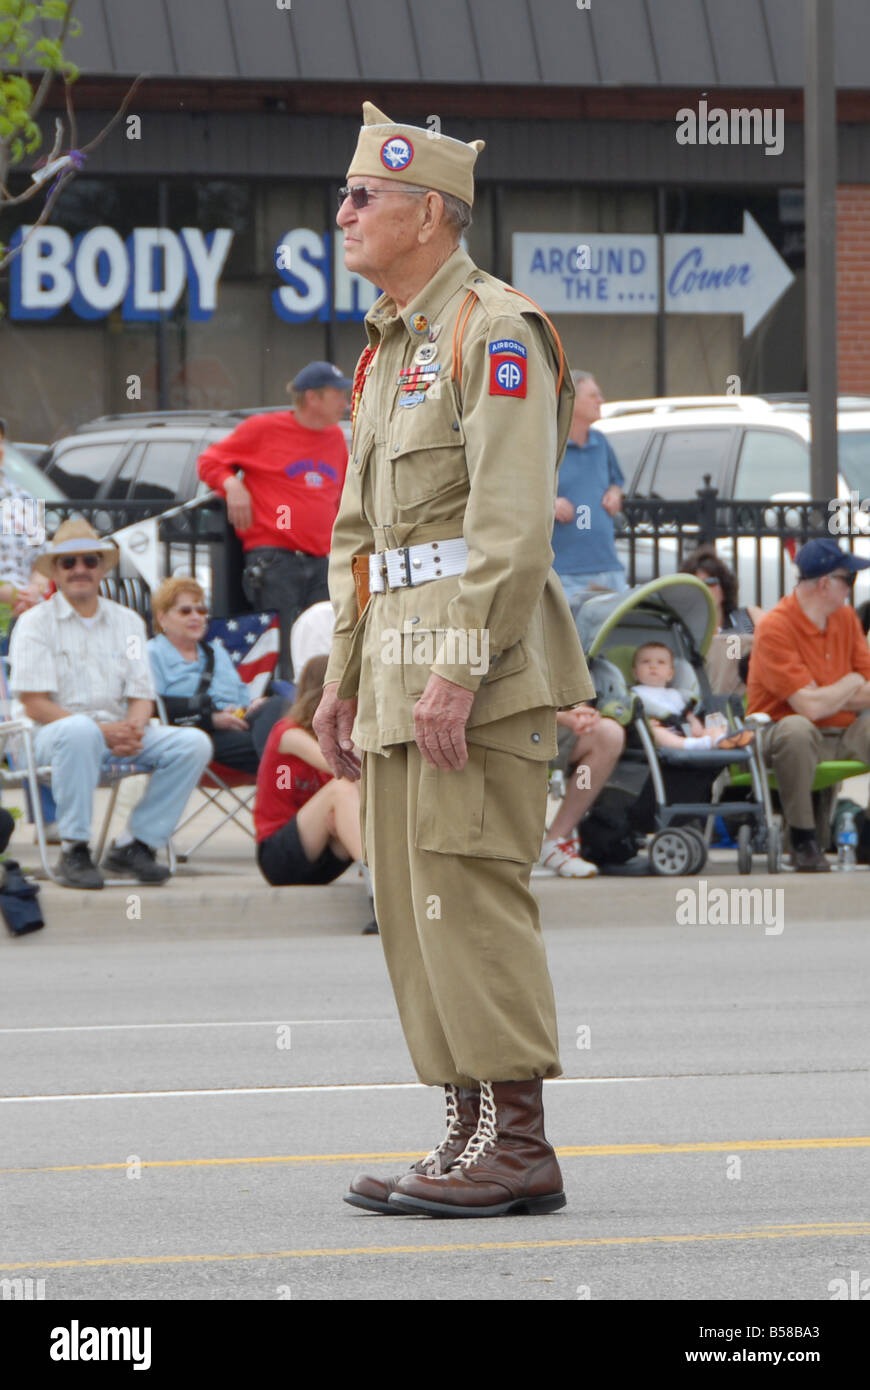 An old war veteran marches in a Memorial Day parade. - Stock Image